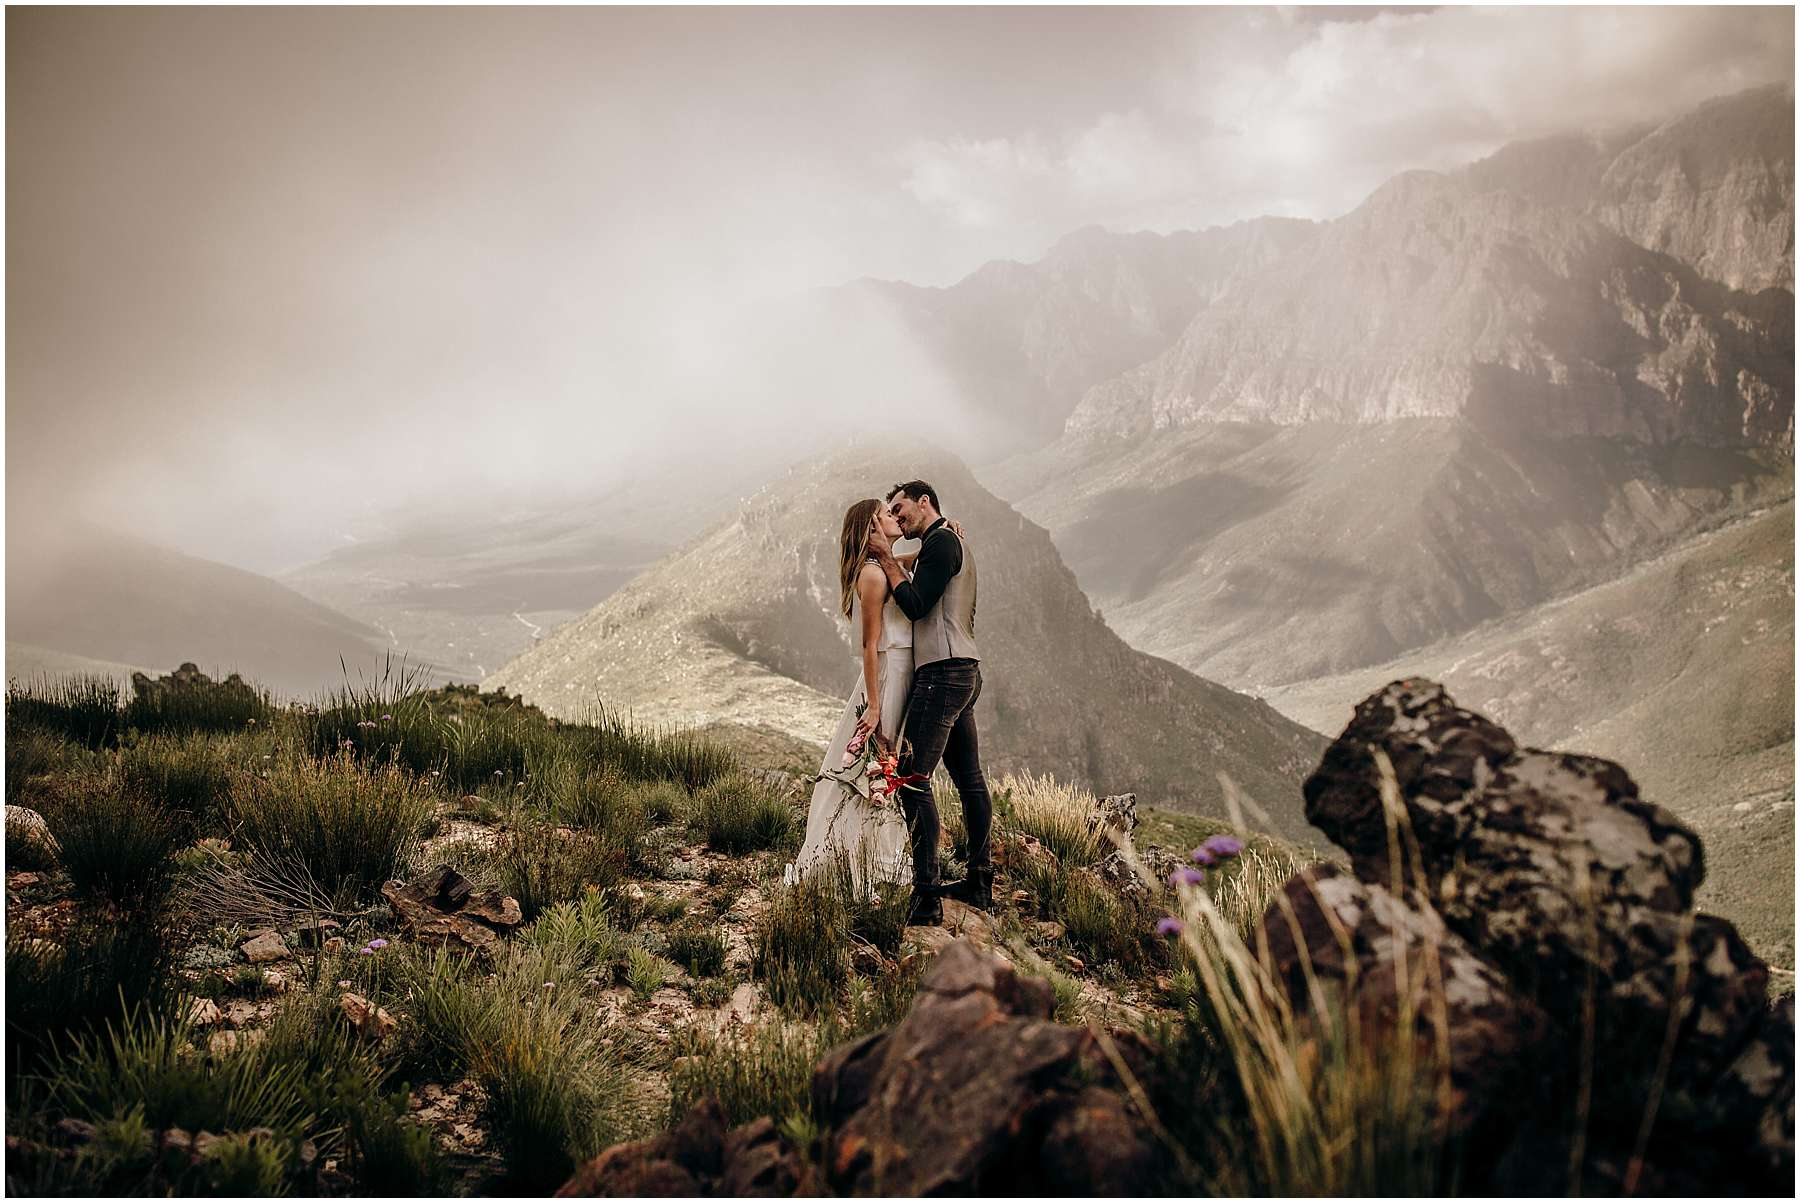 LOTTYH-South-Africa-Cape-Town-Elopement-Photographer_0011.jpg